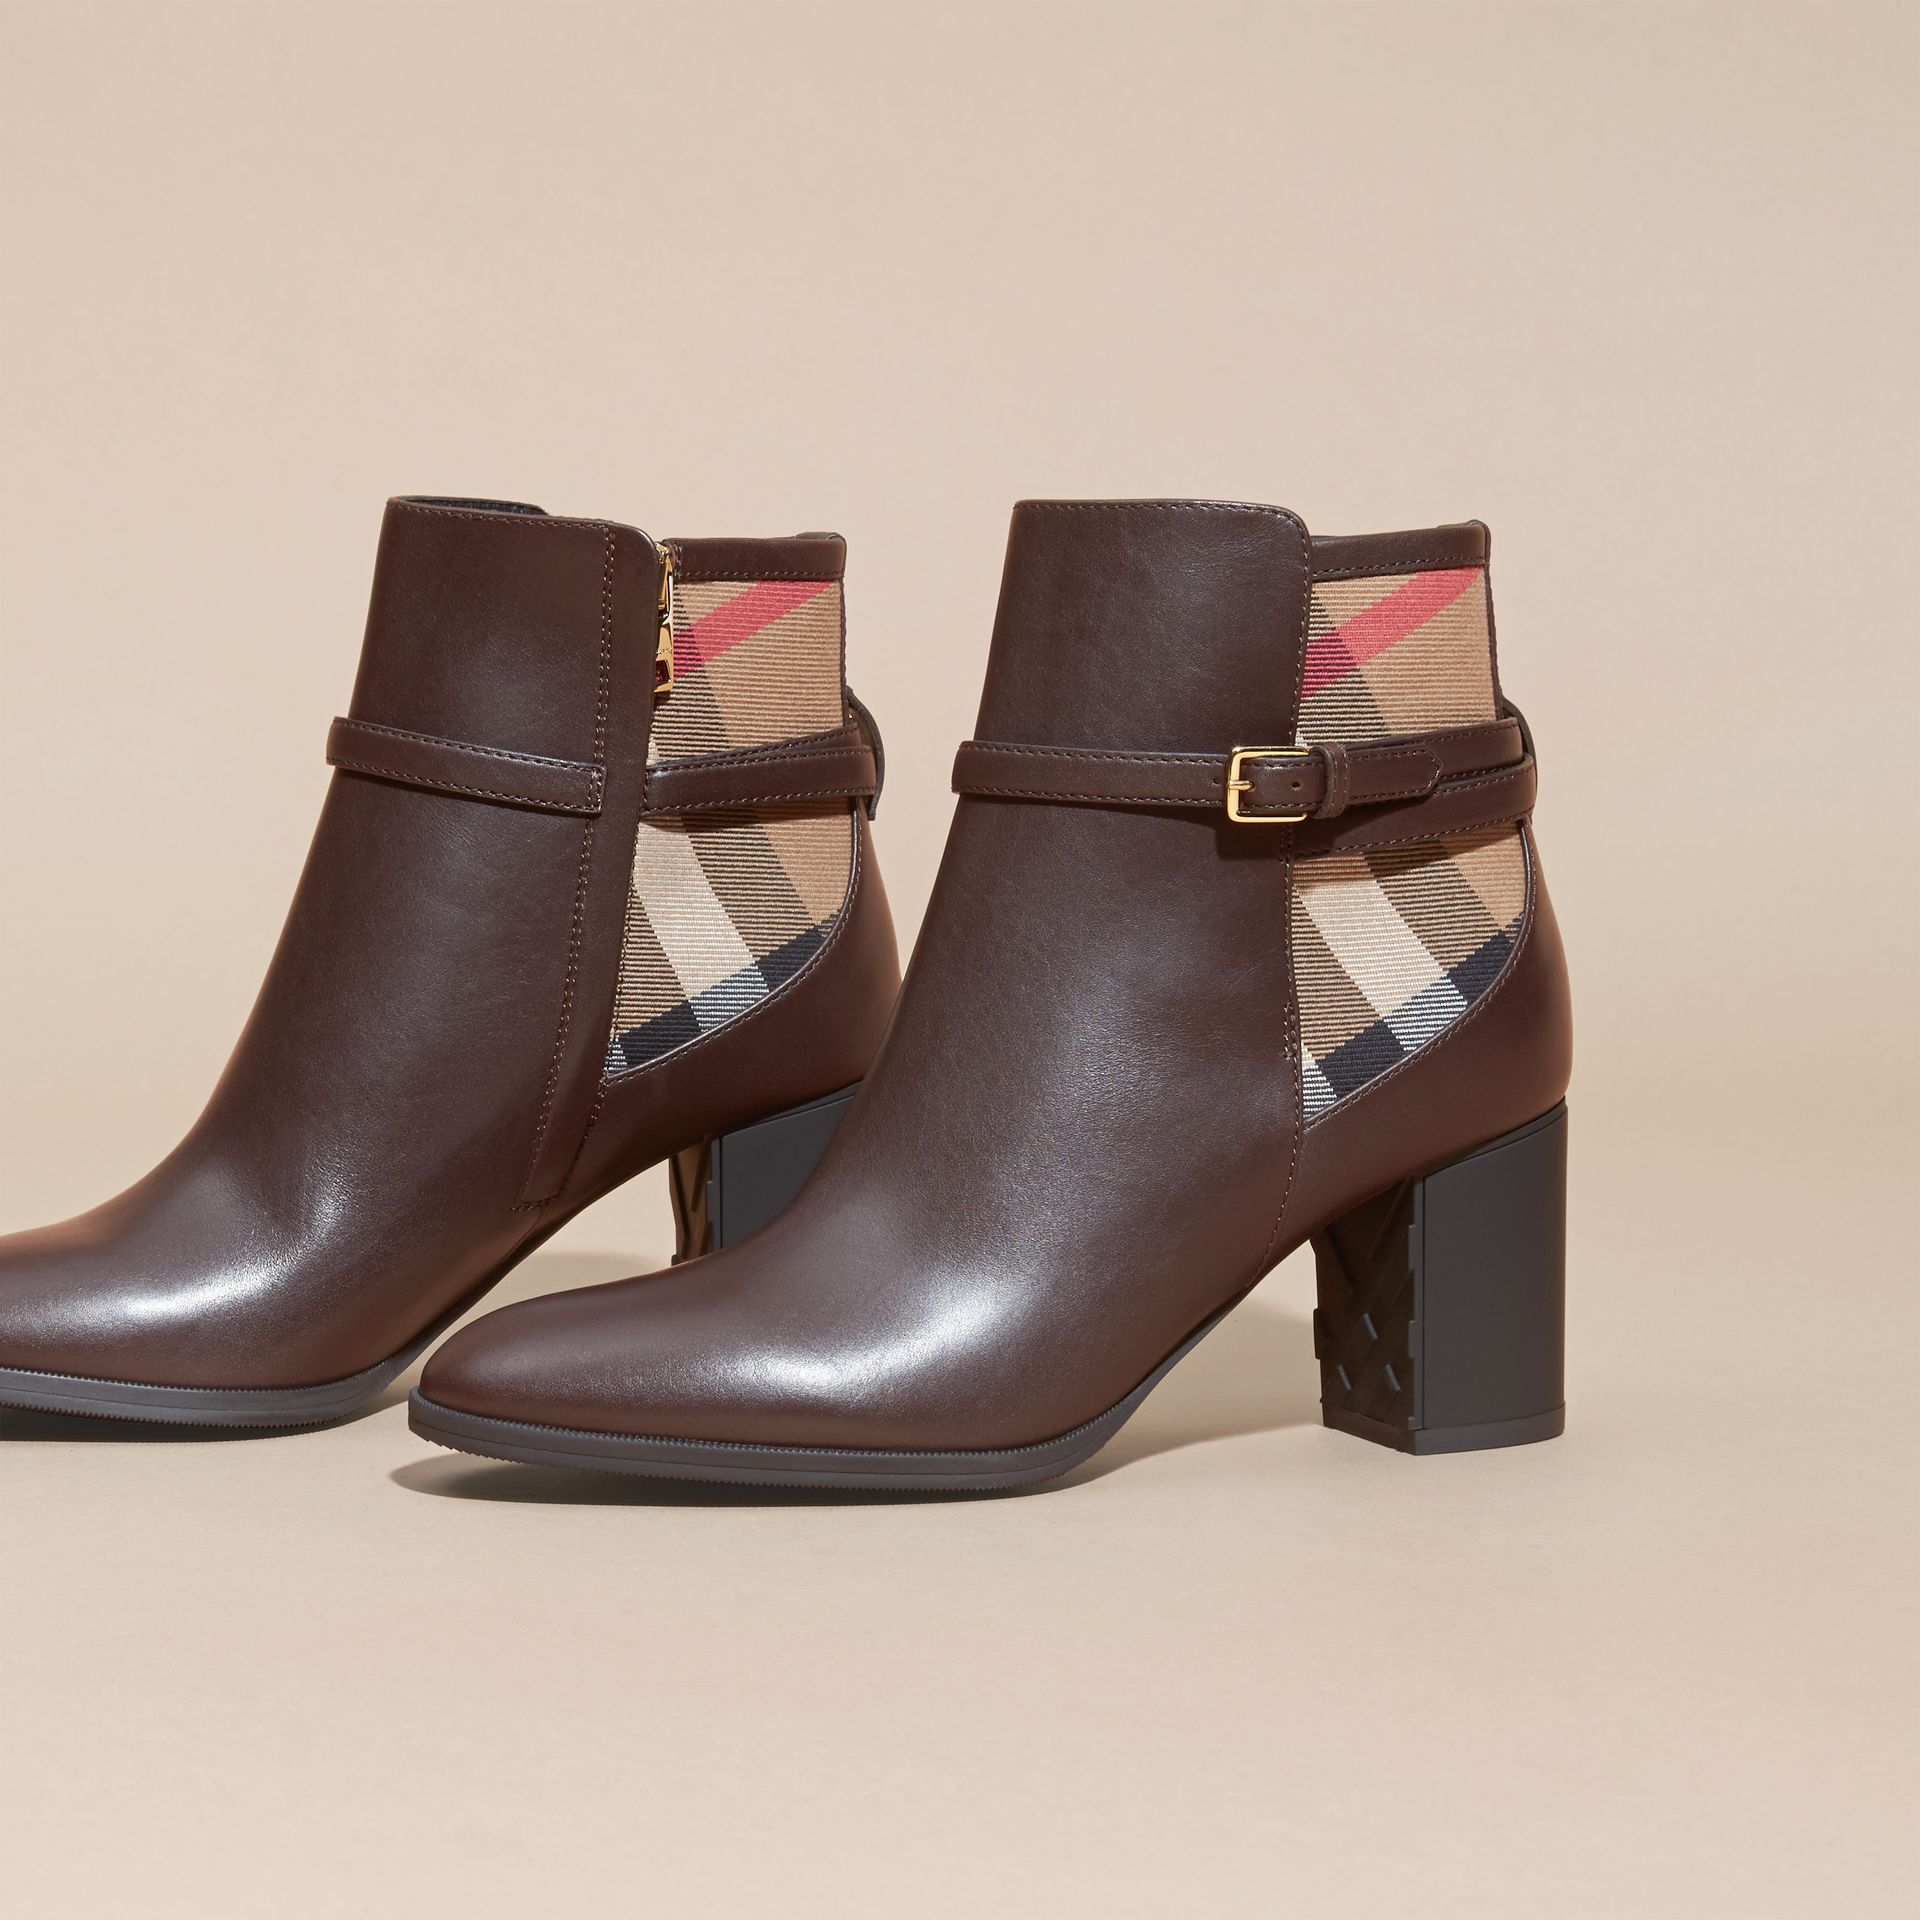 Noisette Bottines en cuir et coton House check Noisette - photo de la galerie 3